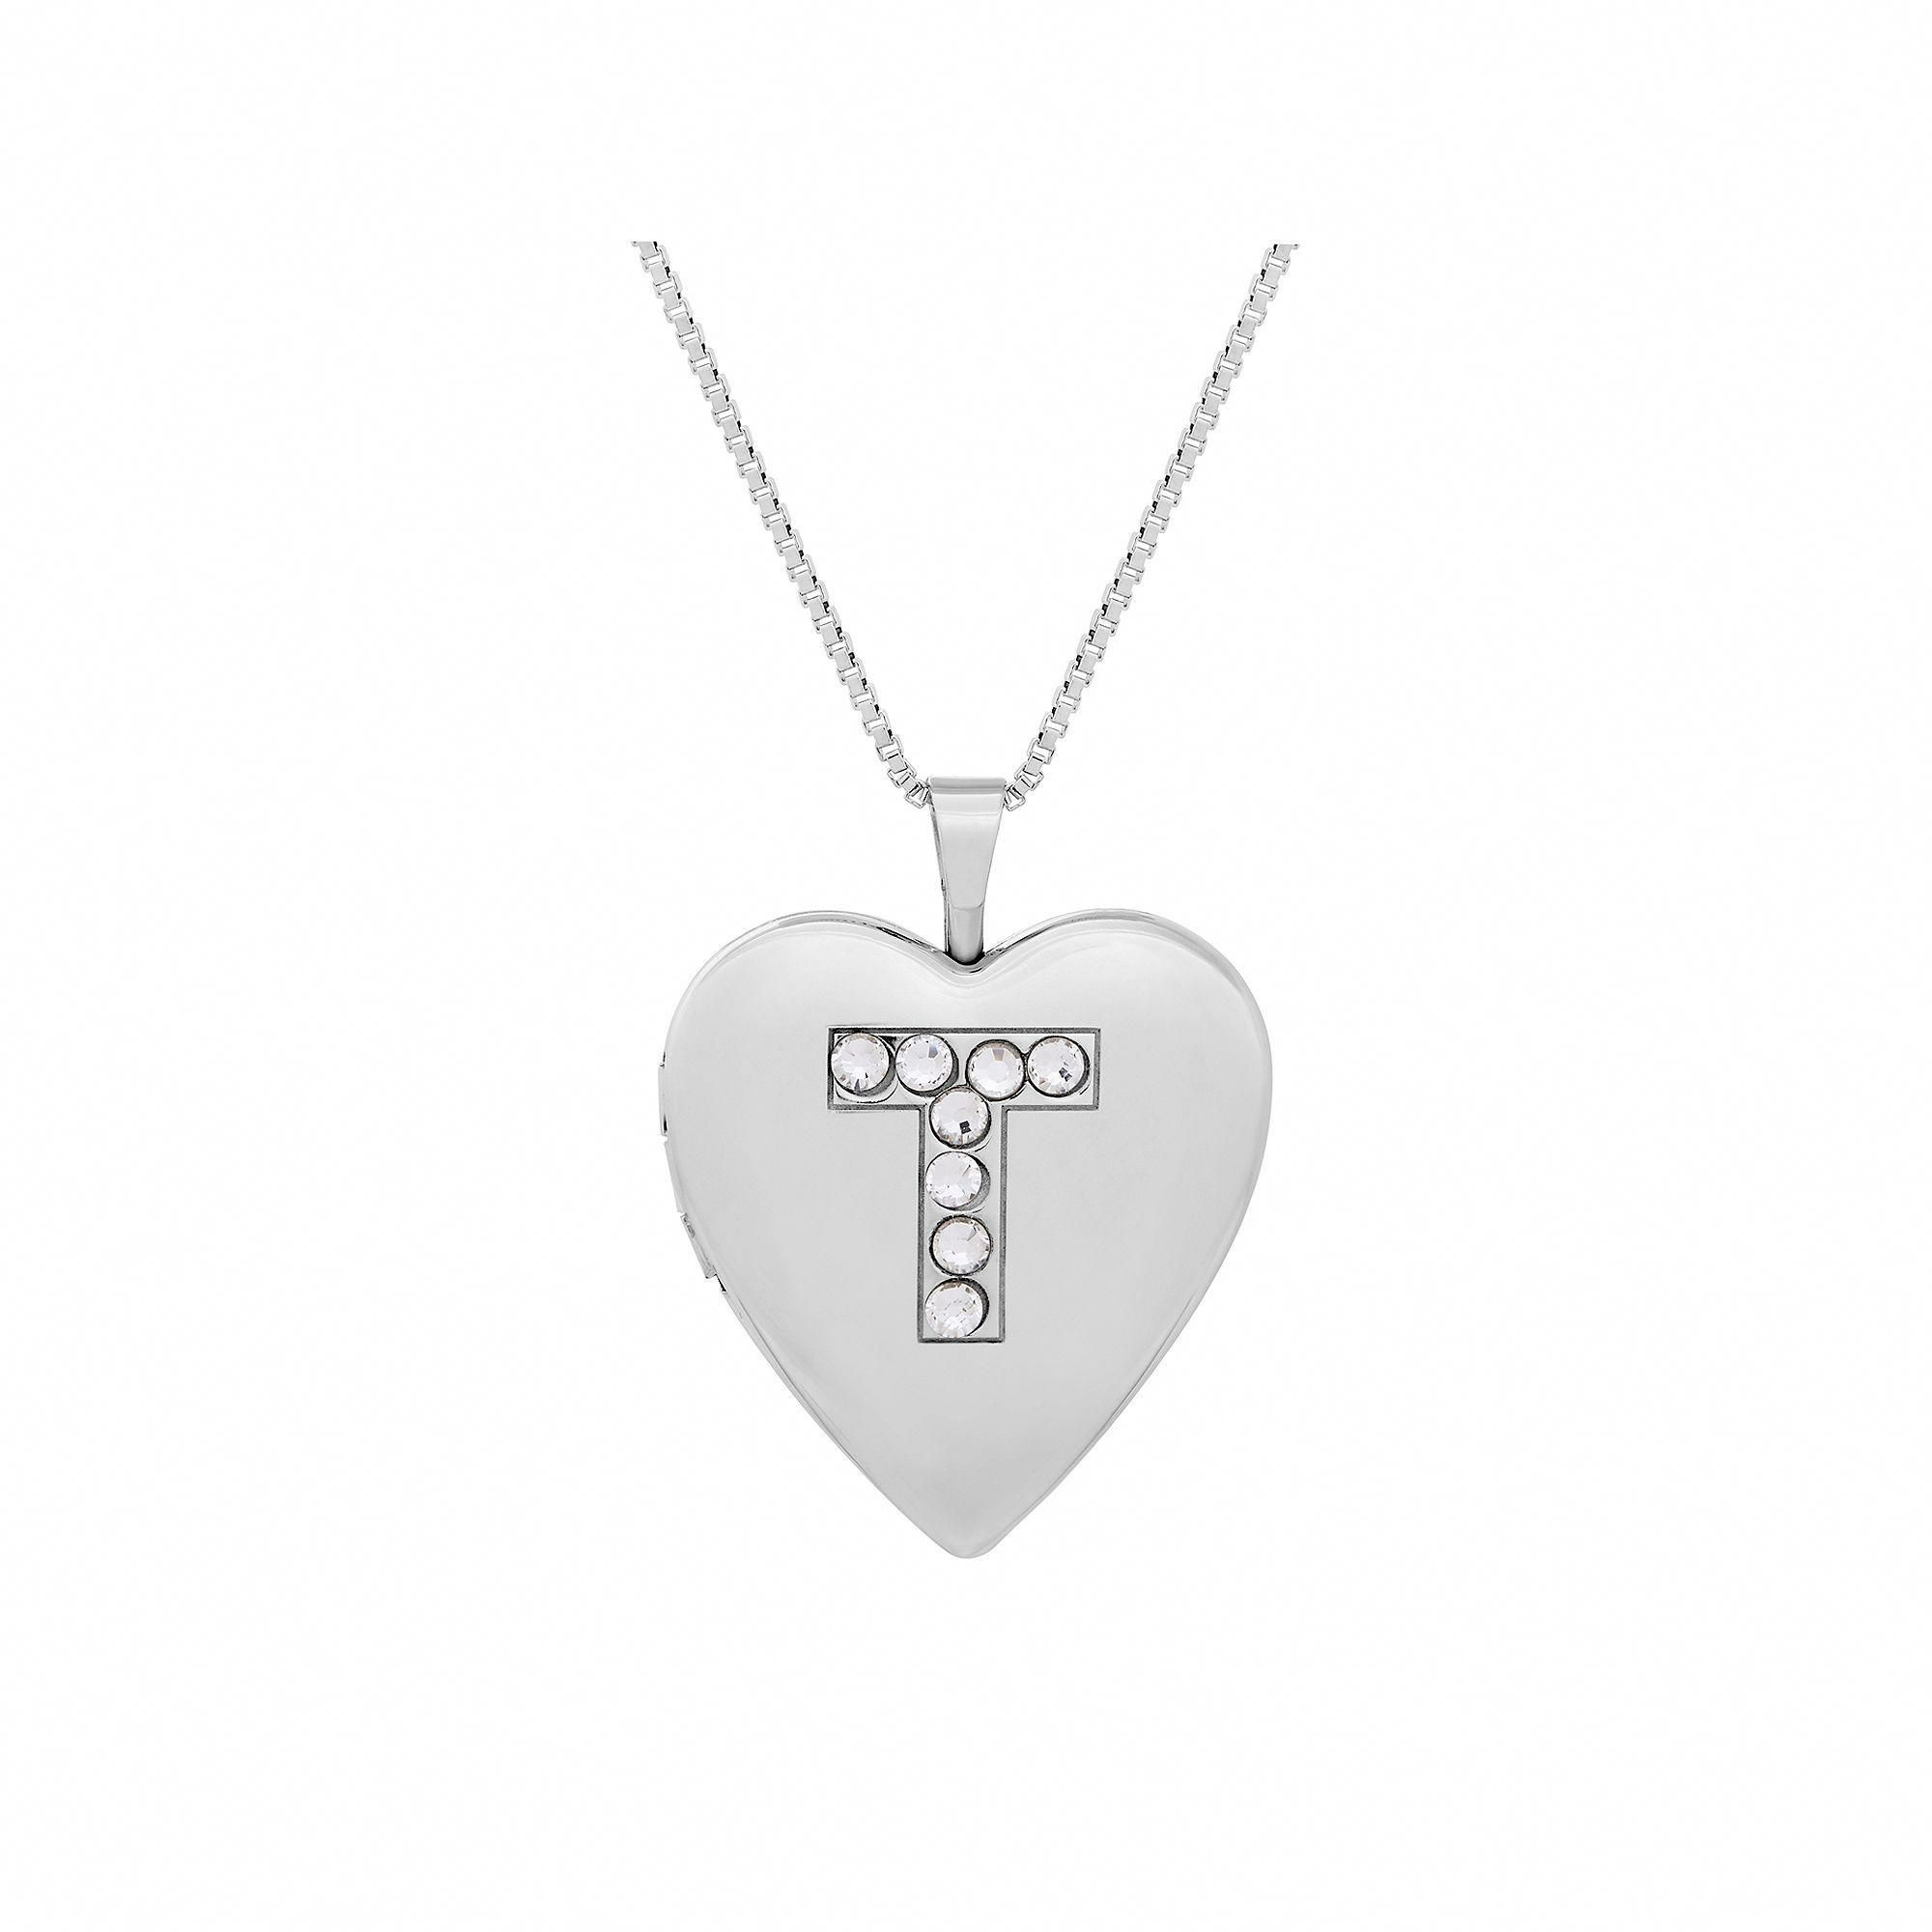 Sterling Silver Crystal Monogram Heart Locket Necklace, Women's Intended For Current Heart Locket Plate Necklaces (View 23 of 25)